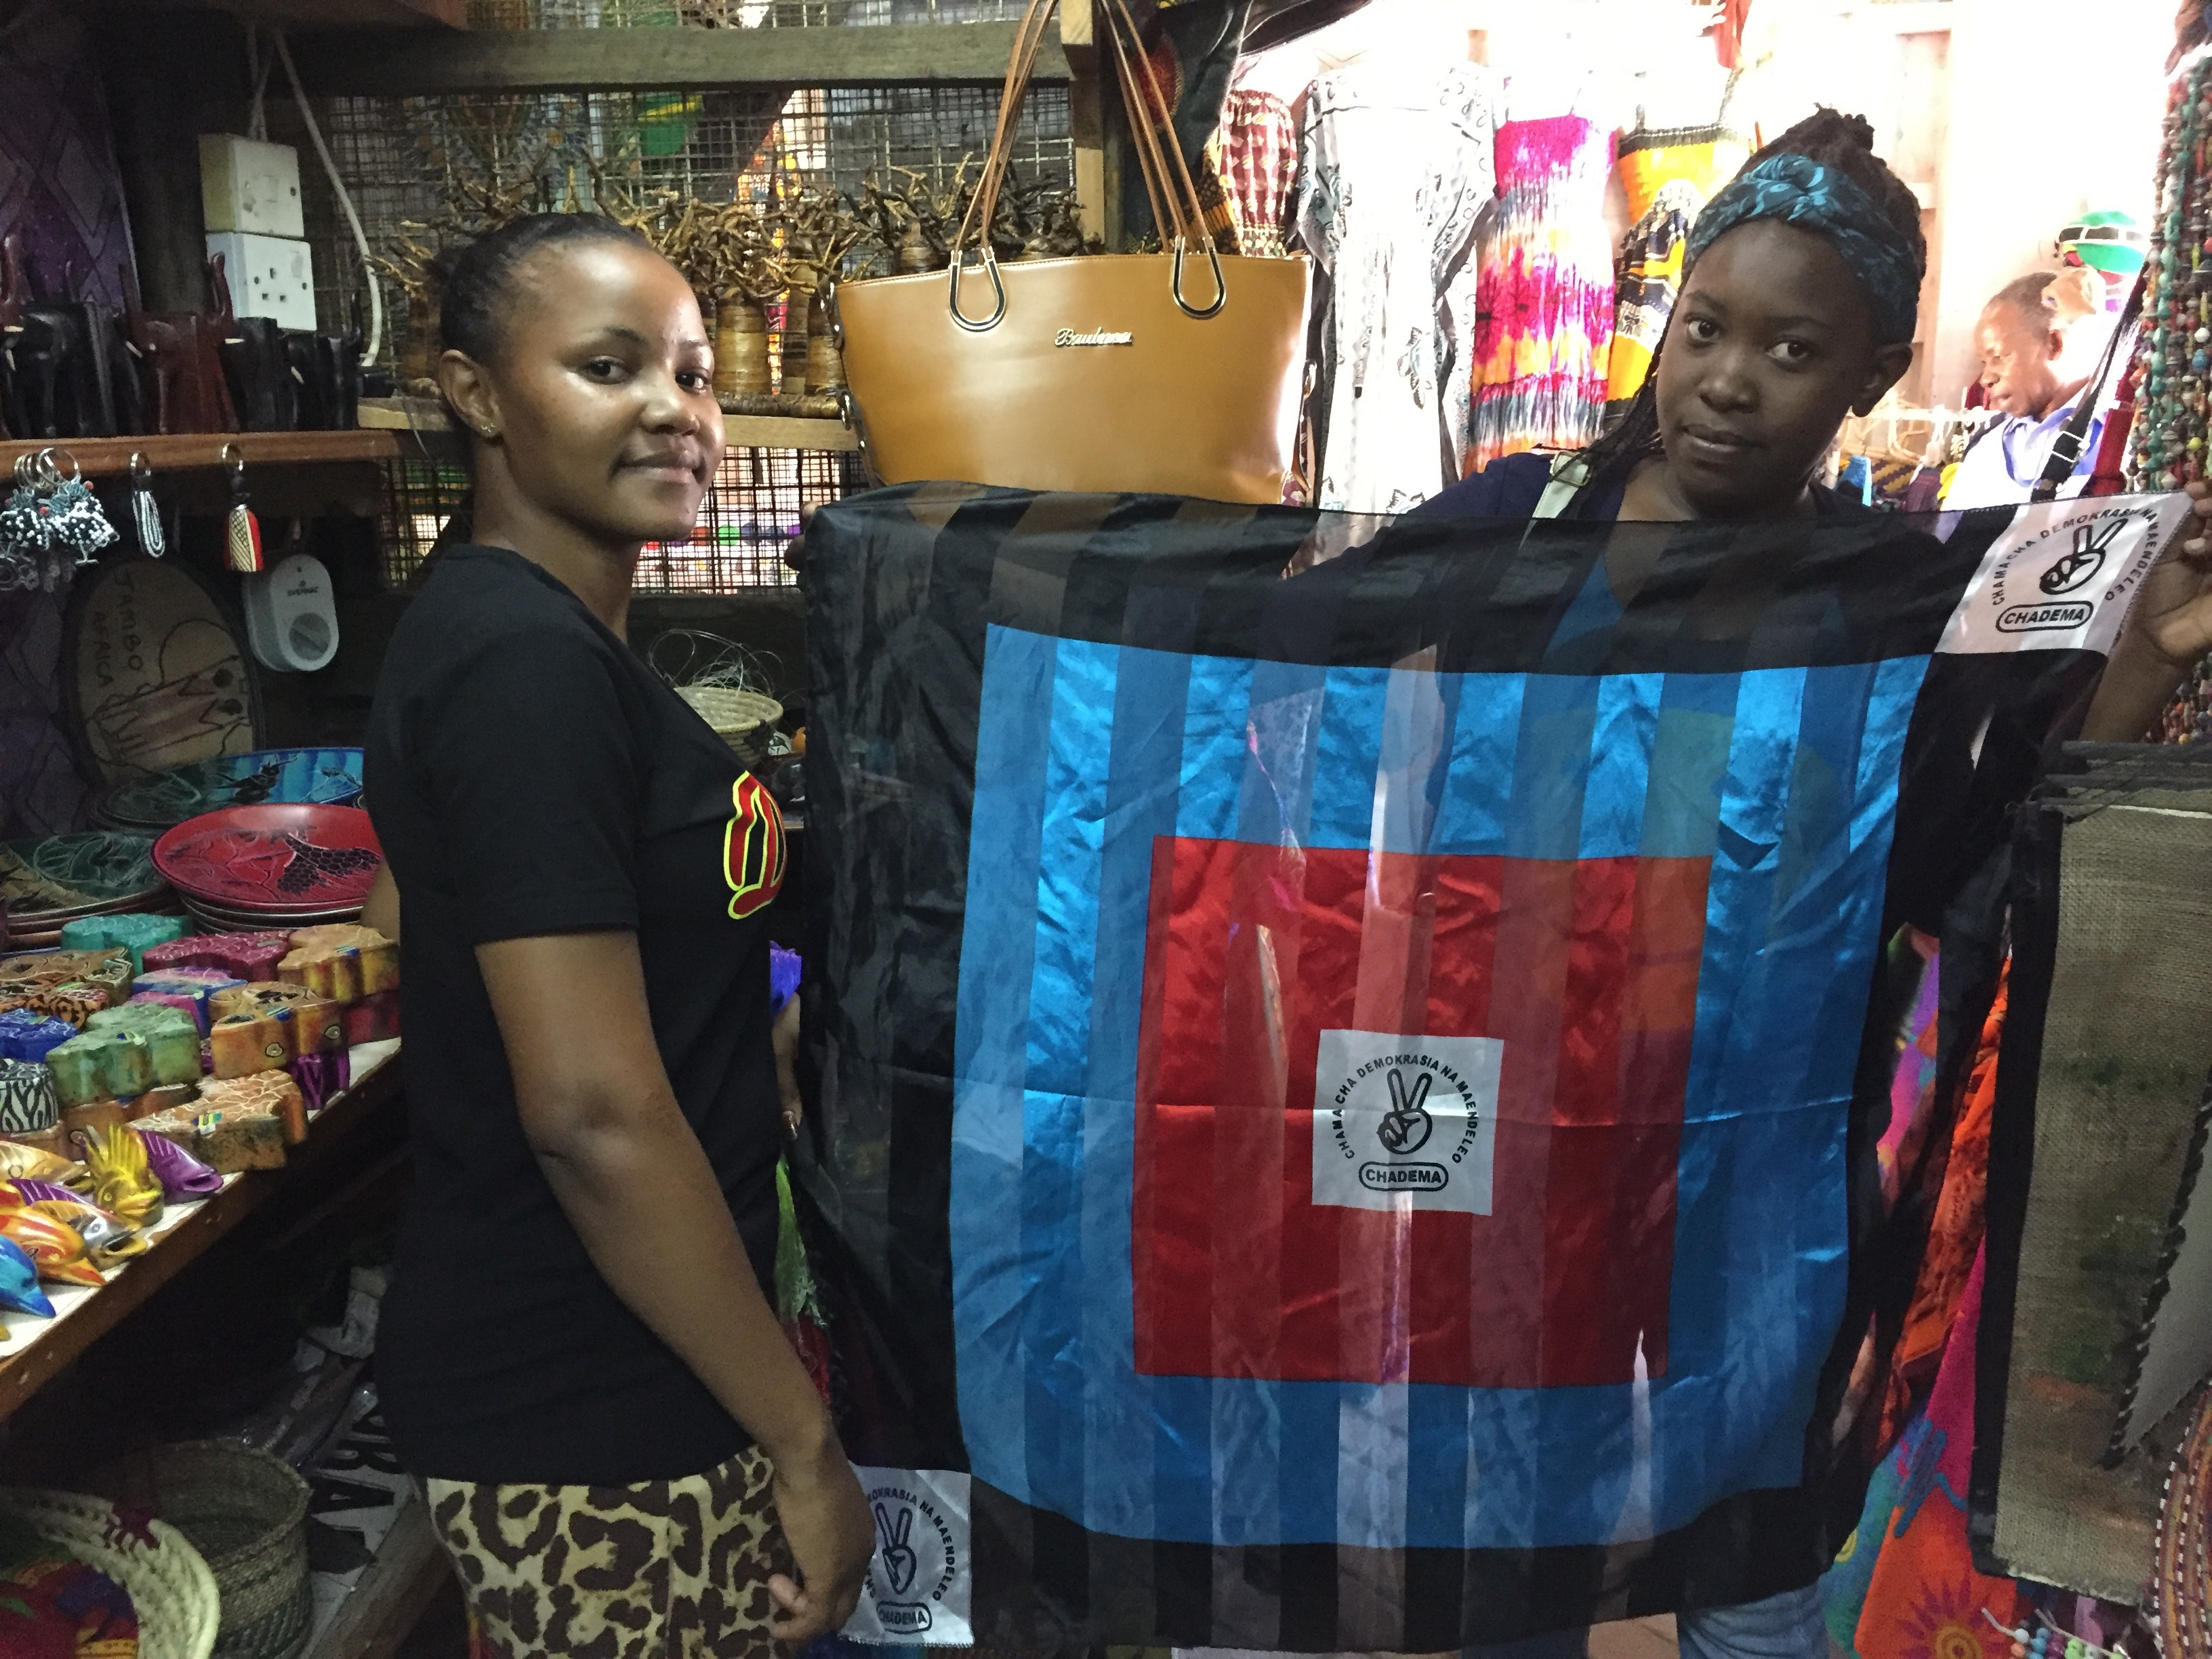 Chadema supporters show their party flag in a curio shop in Dar es Salaam, Oct. 24, 2015. (Jill Craig/VOA)